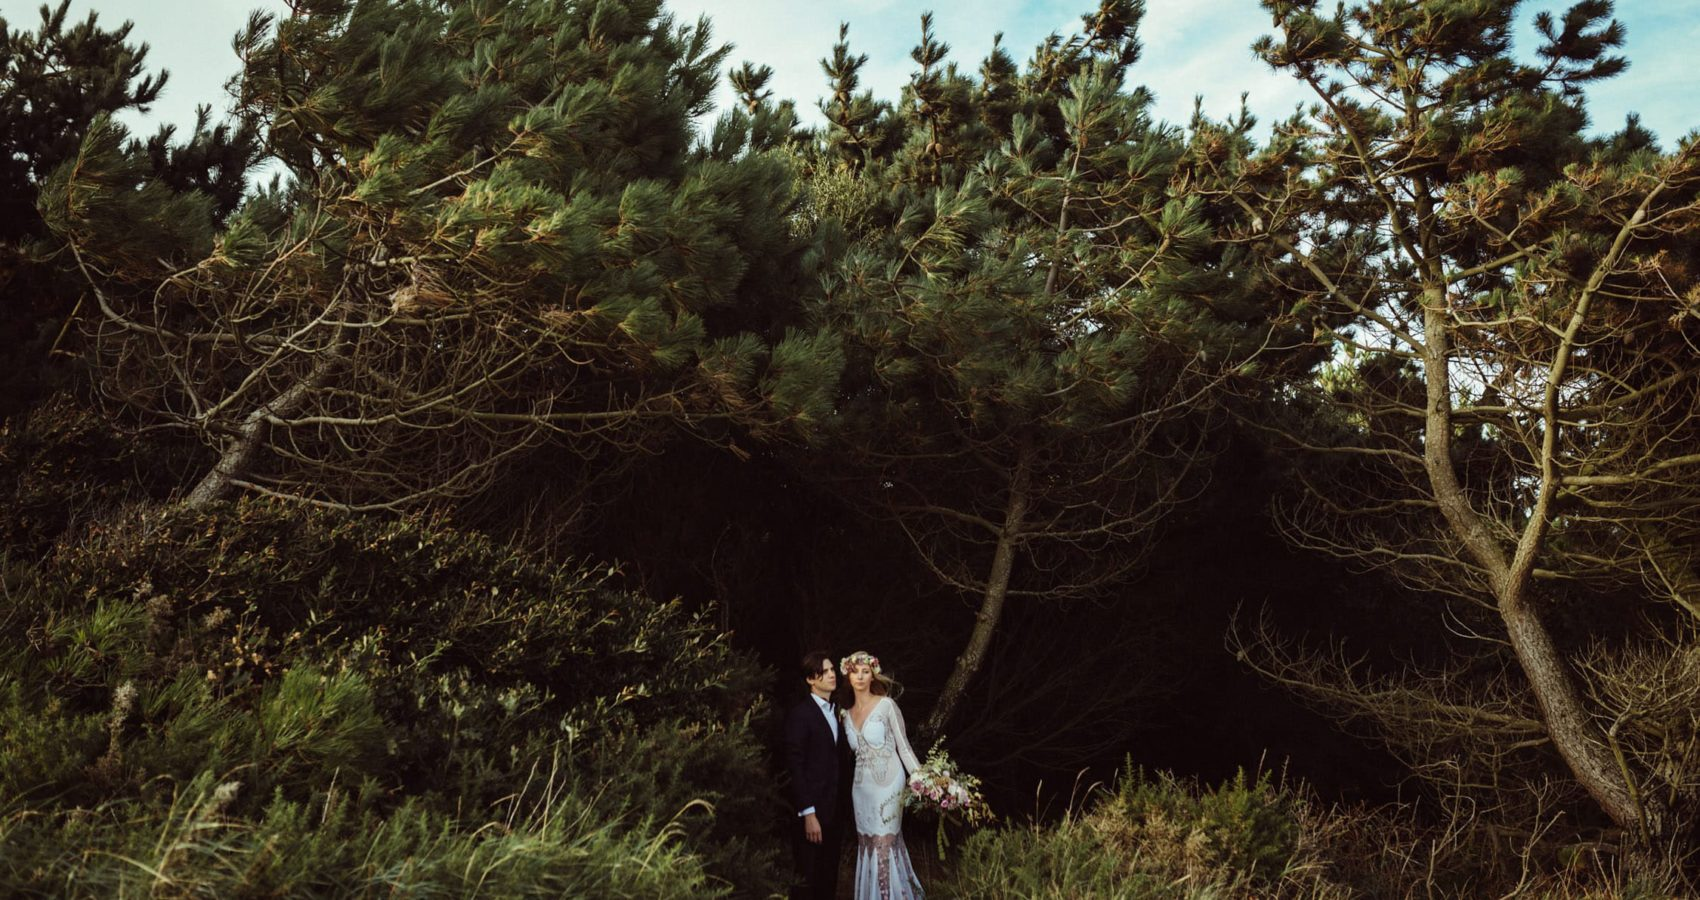 Outdoor wedding in New Forest by London wedding photographers